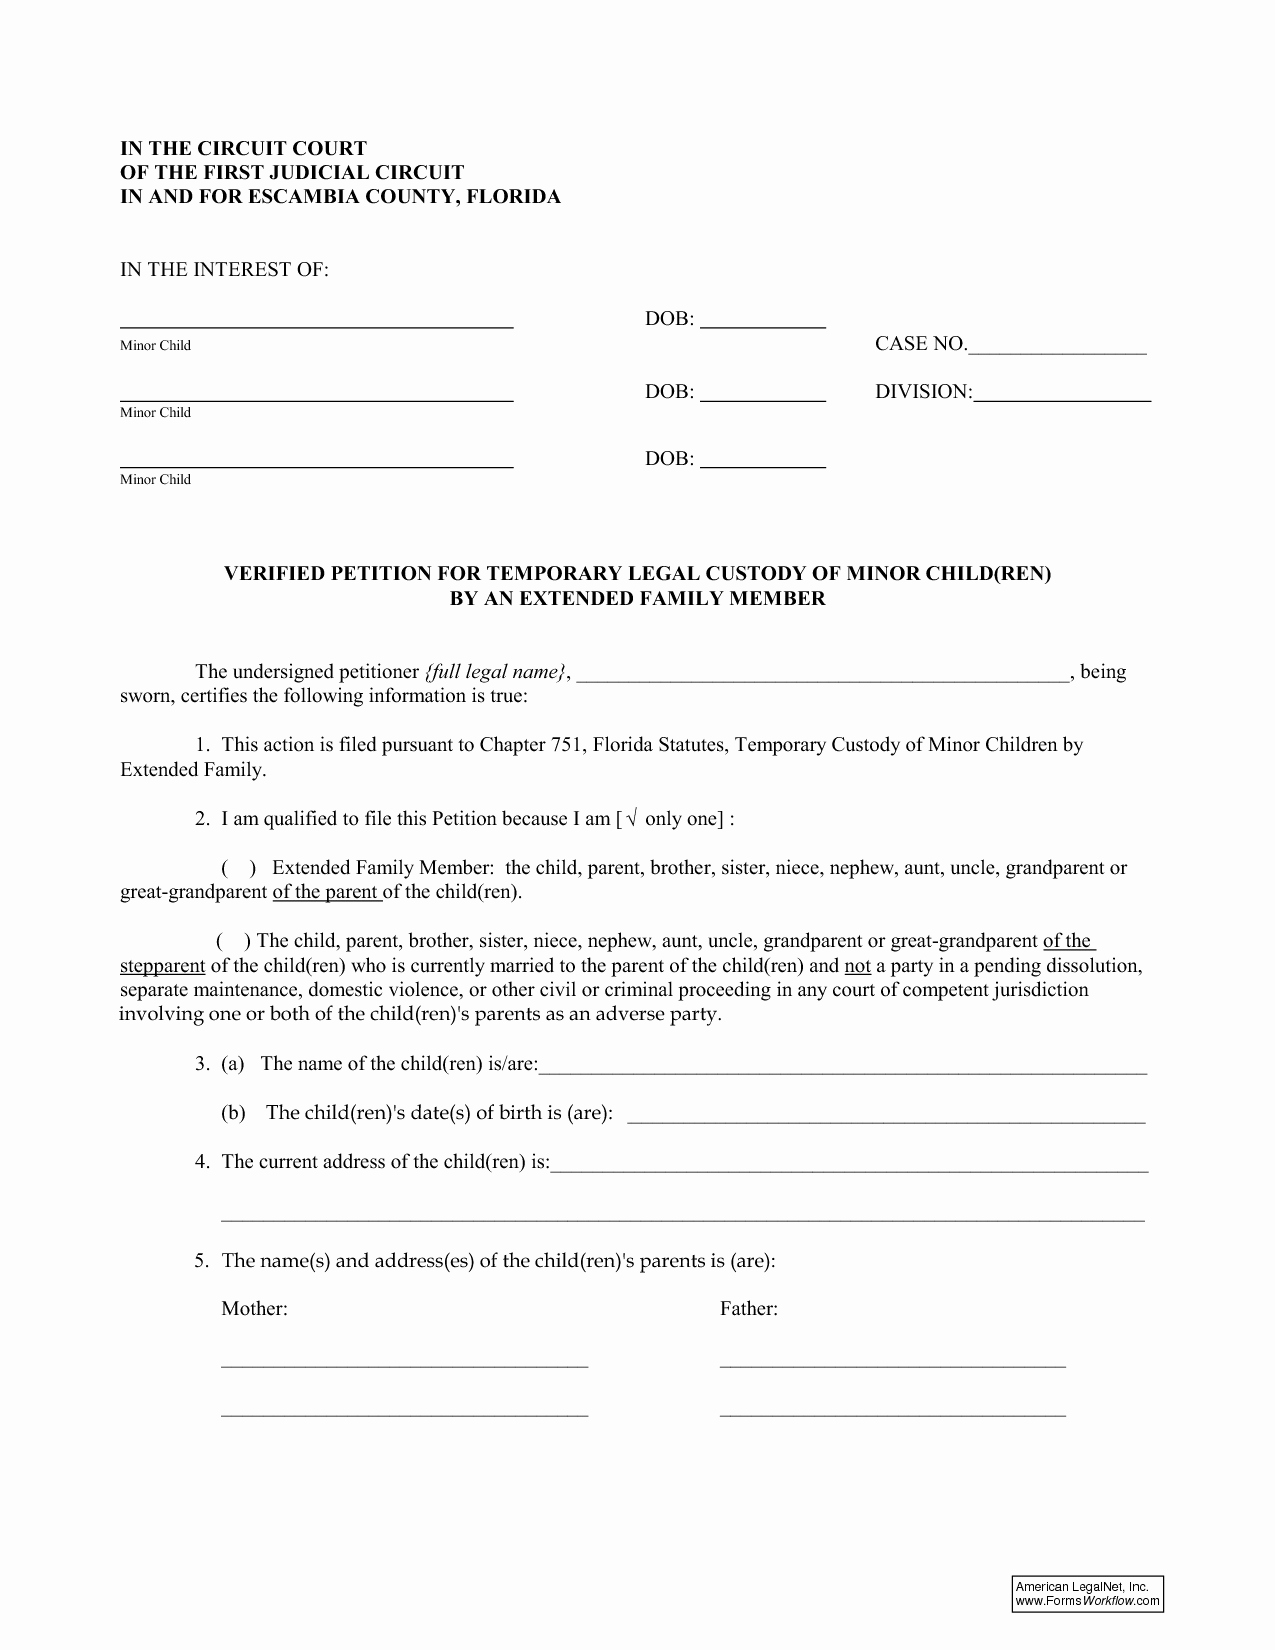 Free Temporary Guardianship form Luxury Temporary Child Custody Agreement form Excellent Best S